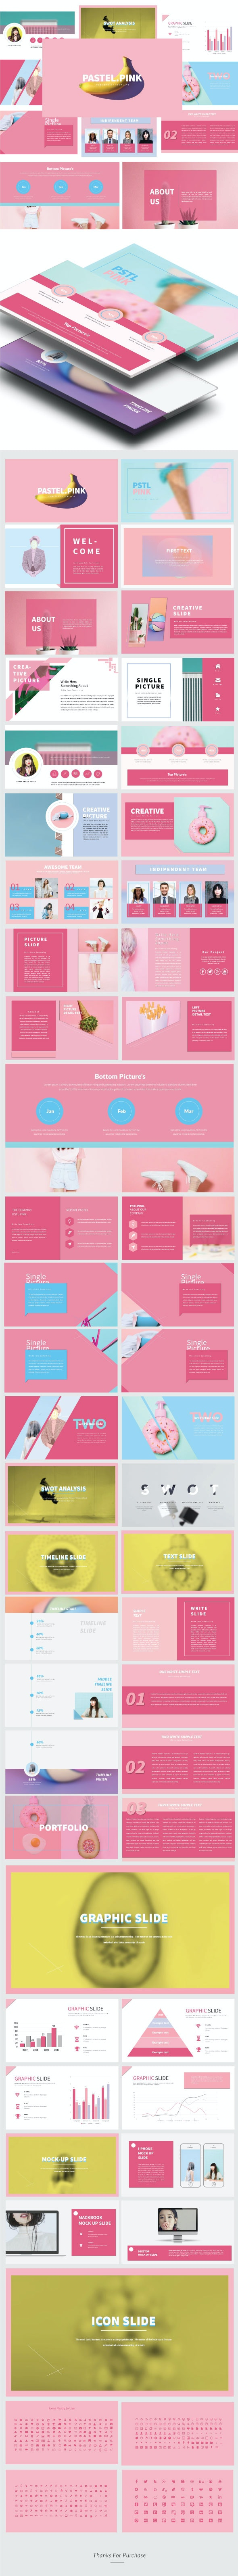 Pstl Pink - Creative Google Slide Presentation Templates - Google Slides Presentation Templates